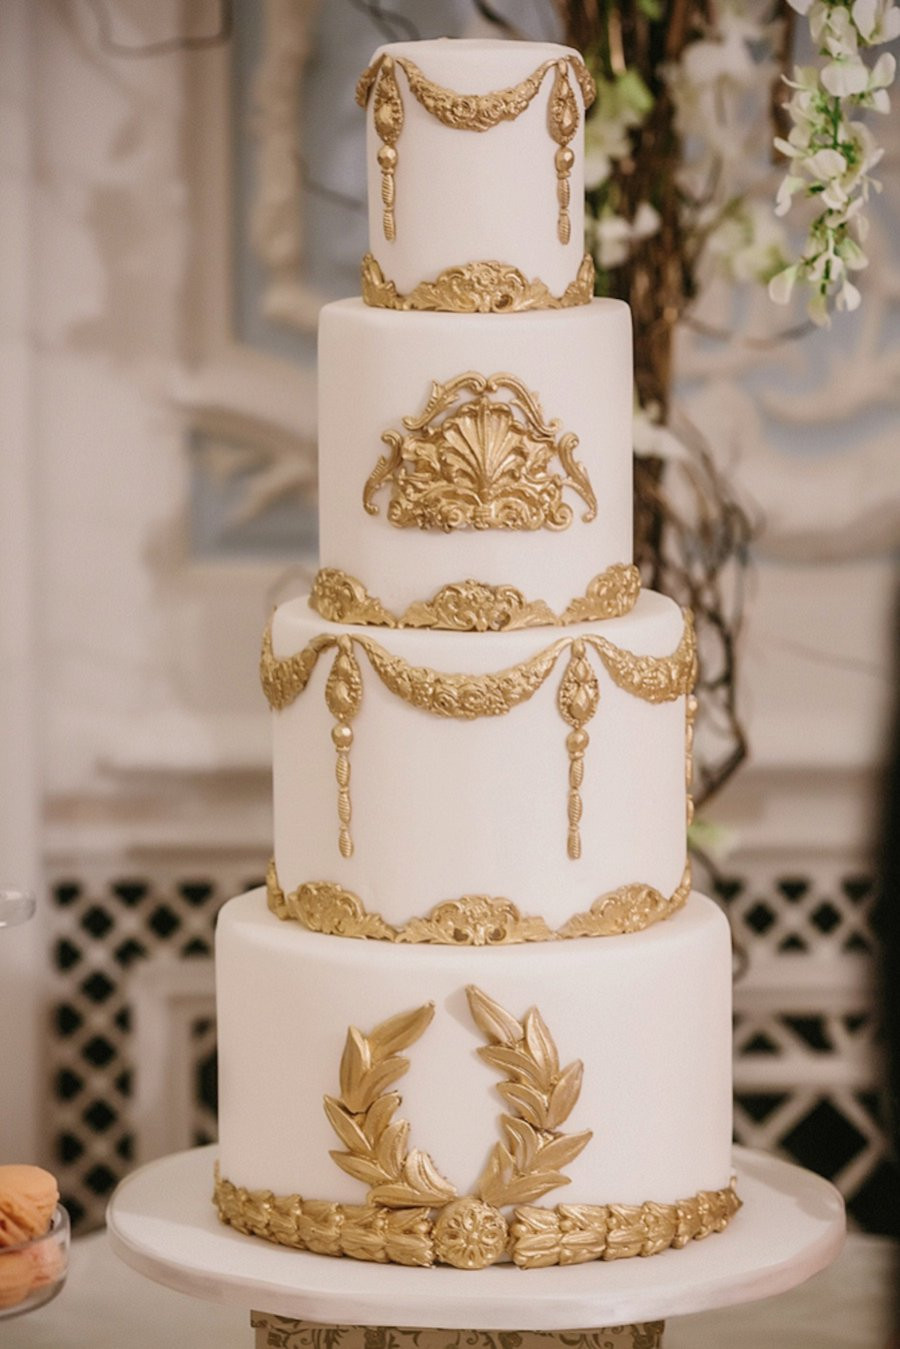 White And Gold Wedding Cakes  Top 10 Wedding Cake Trends for 2016